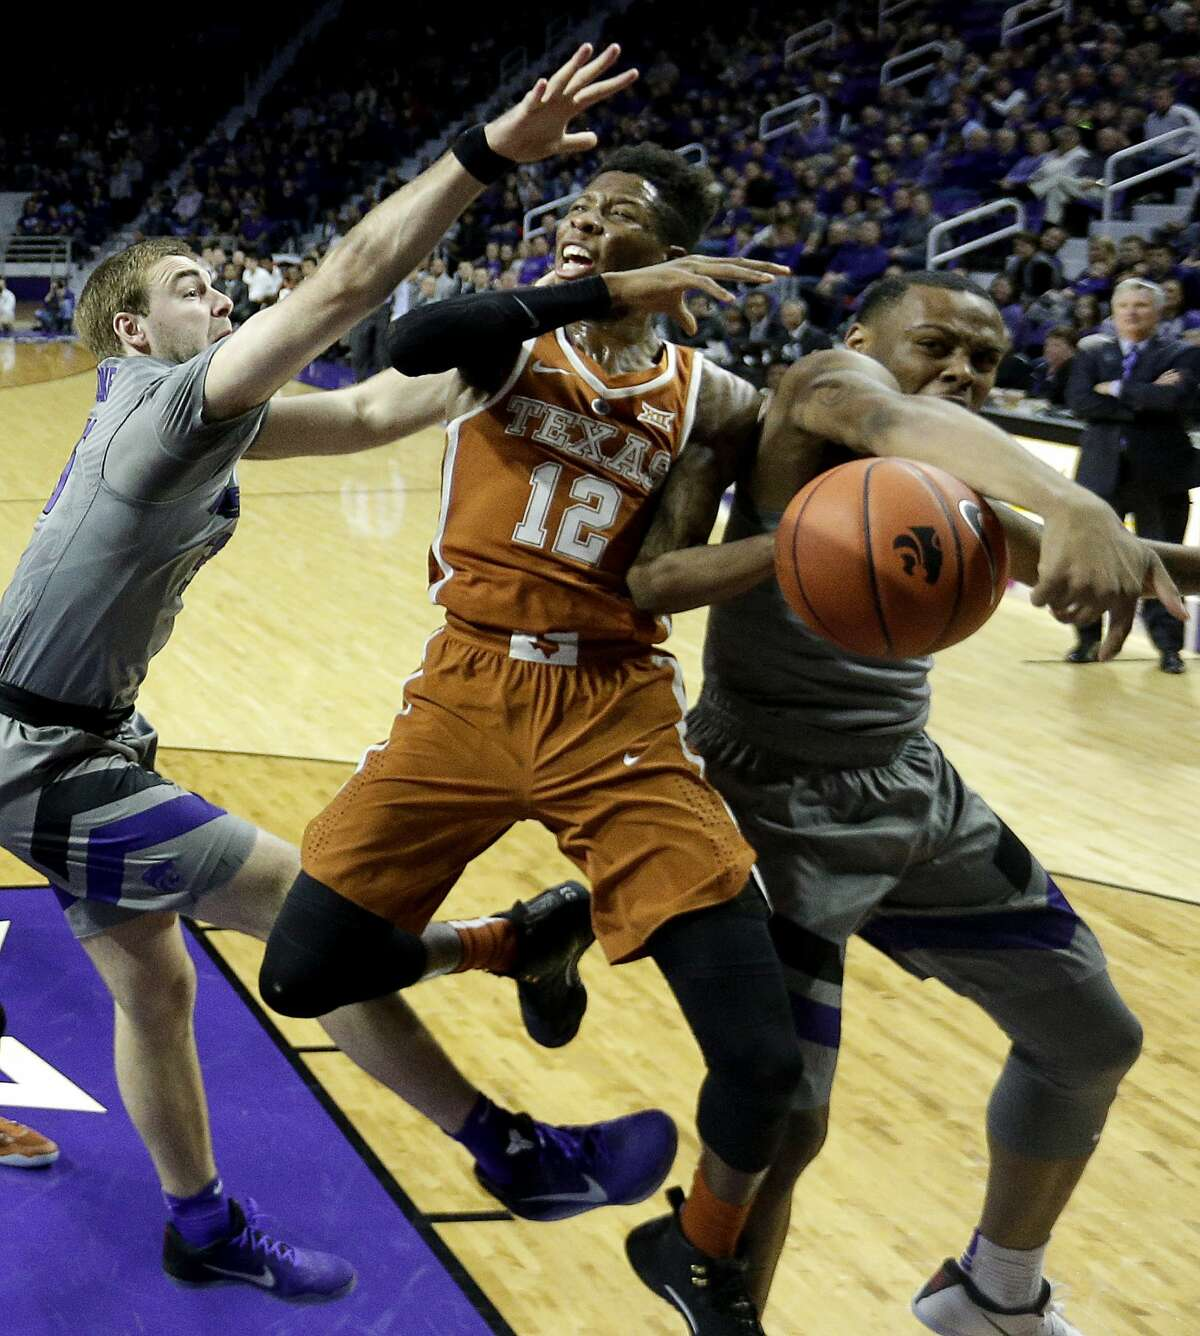 Texas' Kerwin Roach Jr. (12) is pressured by Kansas State's Austin Budke, left, and Carlbe Ervin II, right, as he puts up a shot during the first half of an NCAA college basketball game Friday, Dec. 30, 2016, in Manhattan, Kan. (AP Photo/Charlie Riedel)